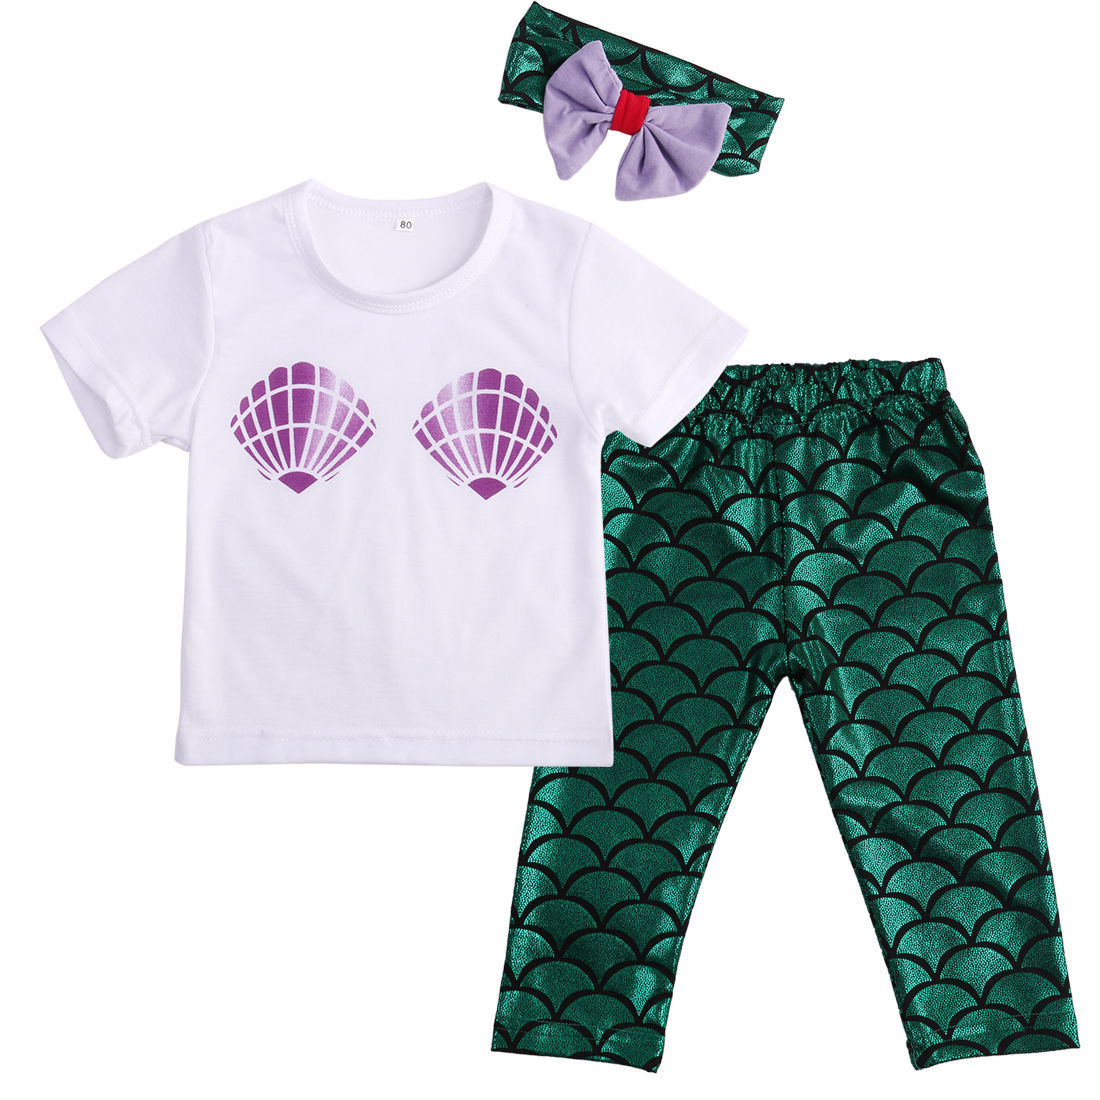 2018 Latest Children's Wear Kids Infant Toddler Baby Girl Clothes Shell Tops T shirt Mermaid Pants Leggings Headband 3PCS Outfit шуруповерт аккумуляторный makita dfr750rfe 18в 2х3ач li ion 4000об м 1 4 2 3кг кейс